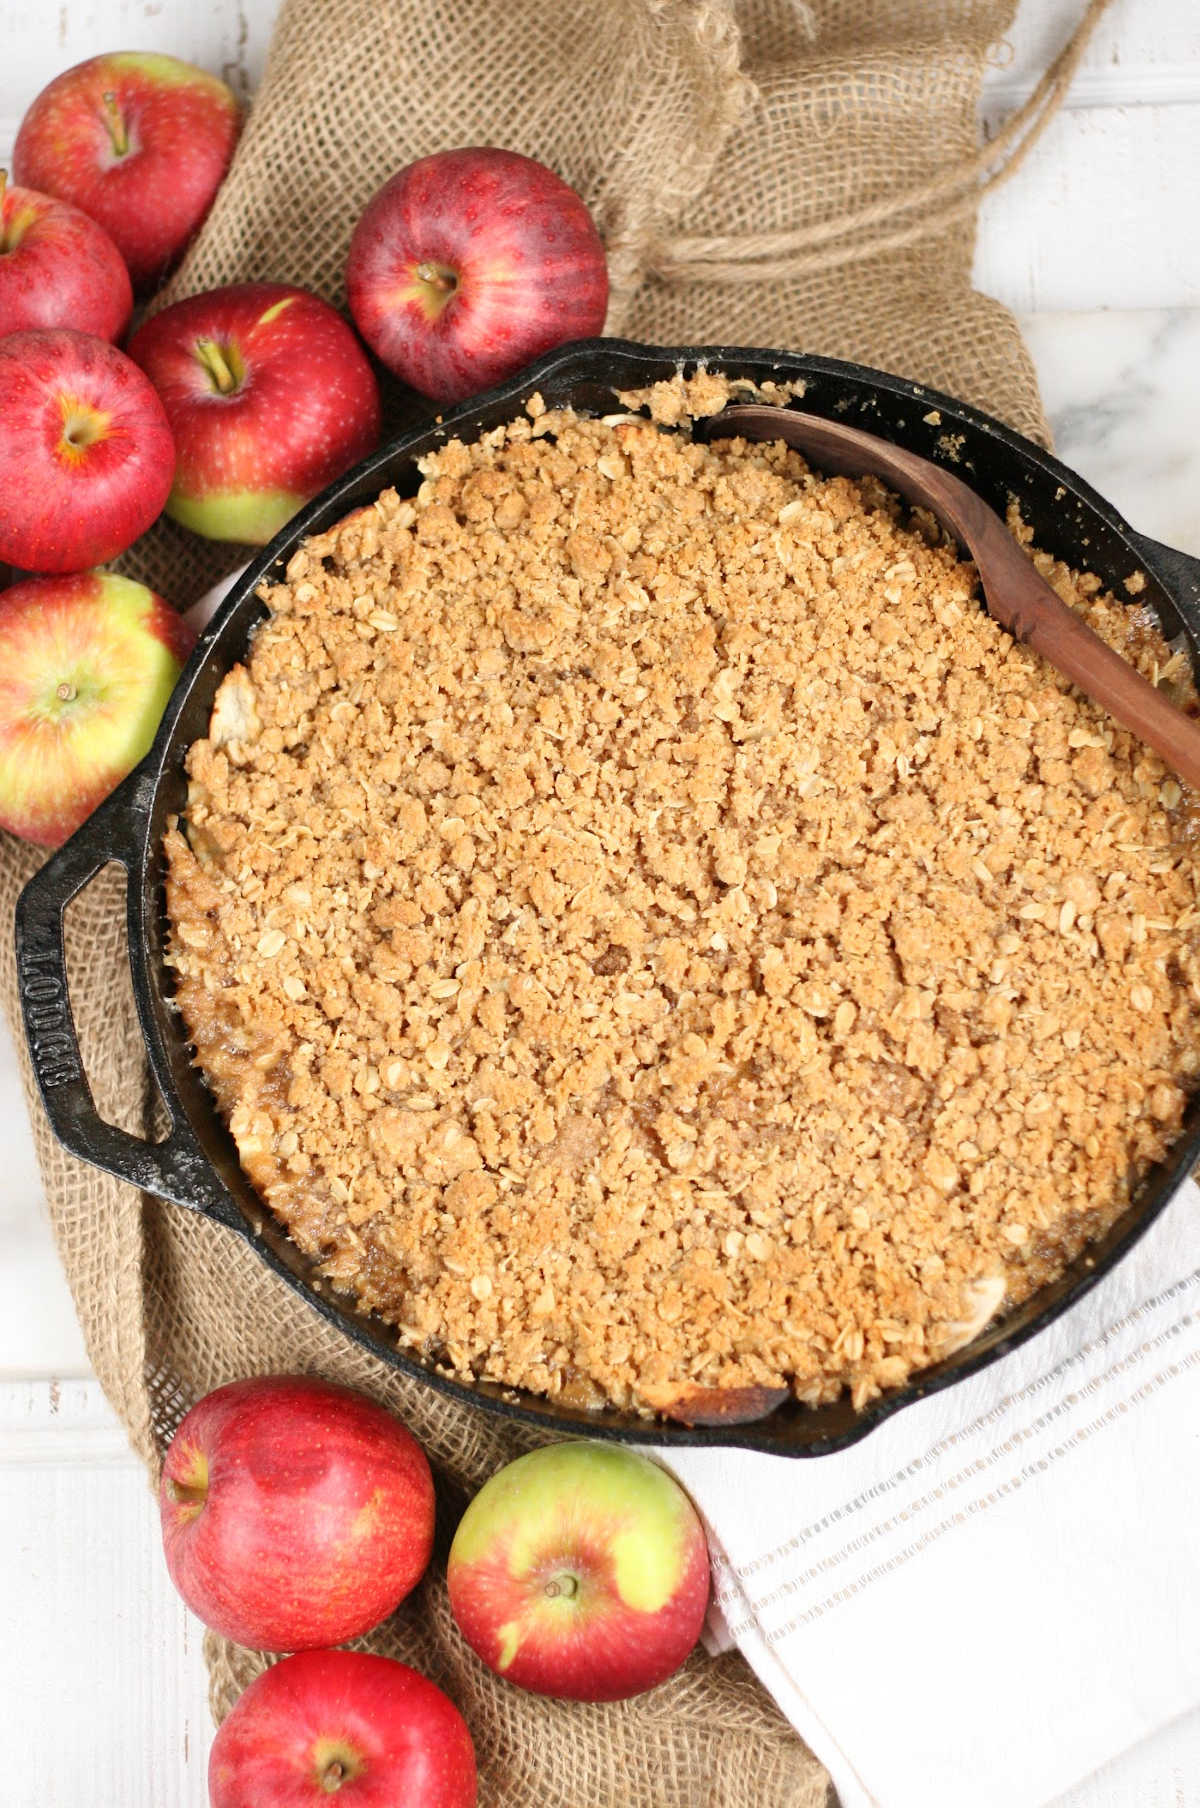 Apple crisp with oatmeal topping in dual handle cast iron skillet, loose apples around.